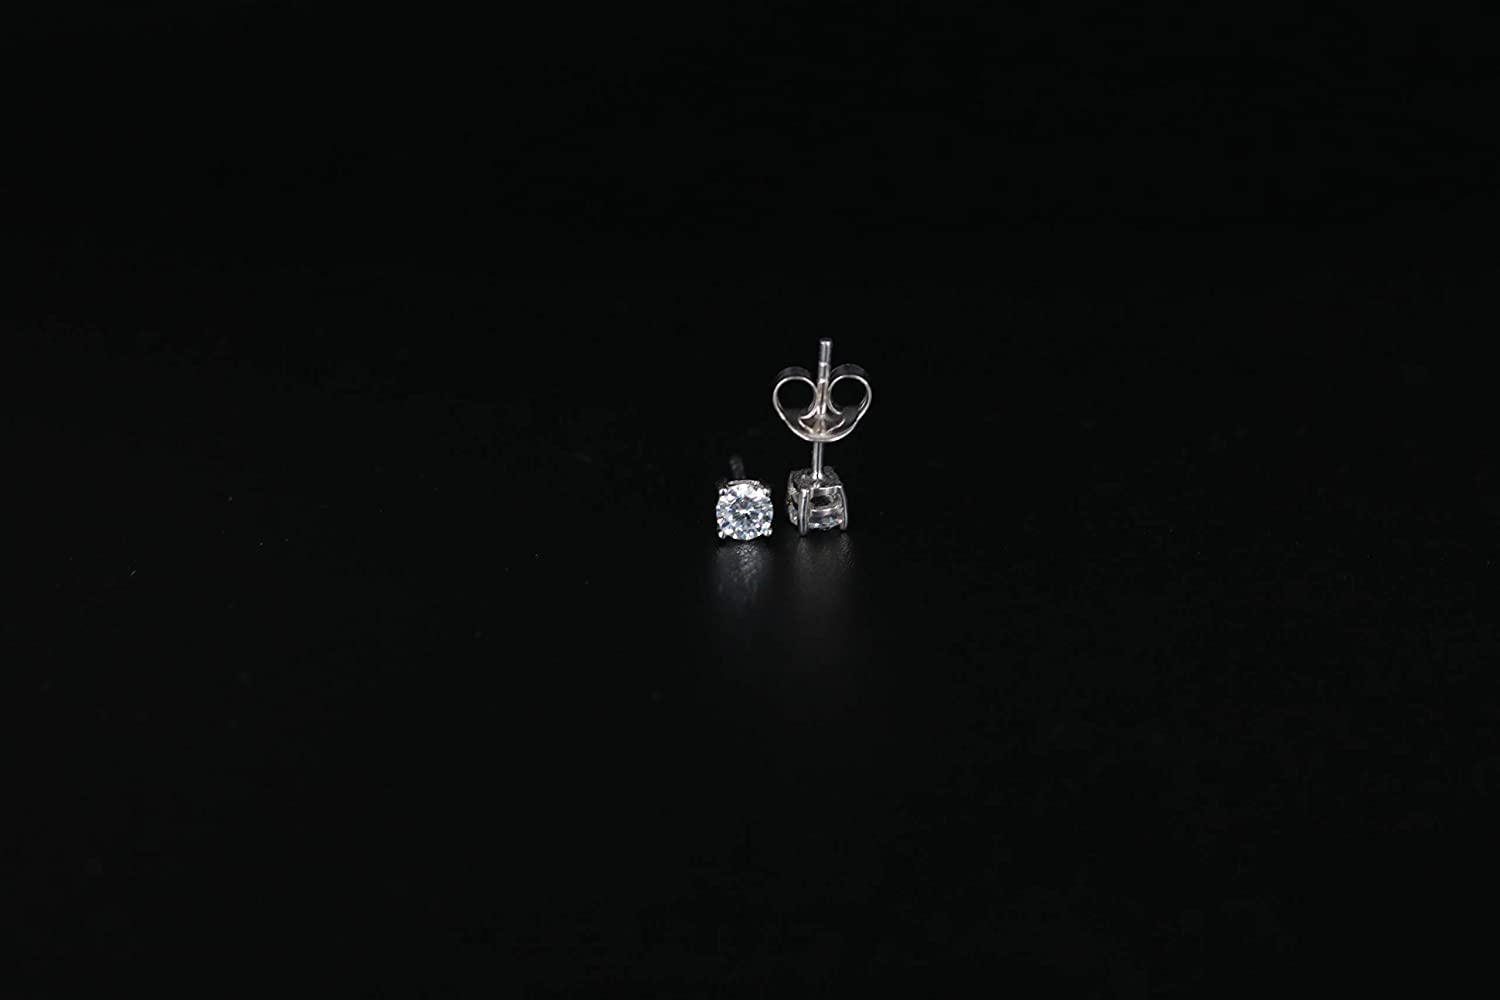 D//VVS1 Round Cut Diamond Fancy Party Wear Solitaire Stud Earrings 14K White Gold Over .925 Sterling Silver For Womens /& Girls 3MM TO 10MM